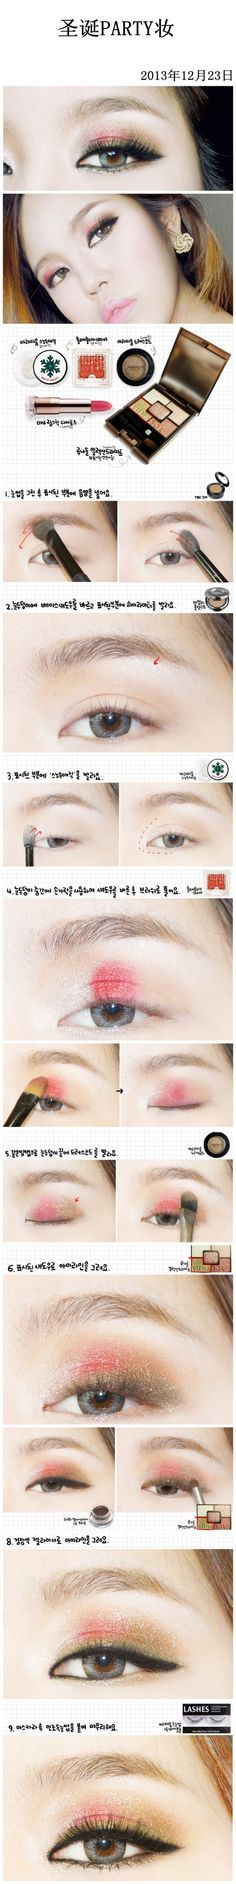 Korean make up eye pink gold brown shimmer Asian Makeup Looks, Asian Eye Makeup, Gold Eye Makeup, Makeup Haul, Beauty Makeup, Makeup Tips, Makeup Inspo, Makeup Inspiration, Ulzzang Makeup Tutorial